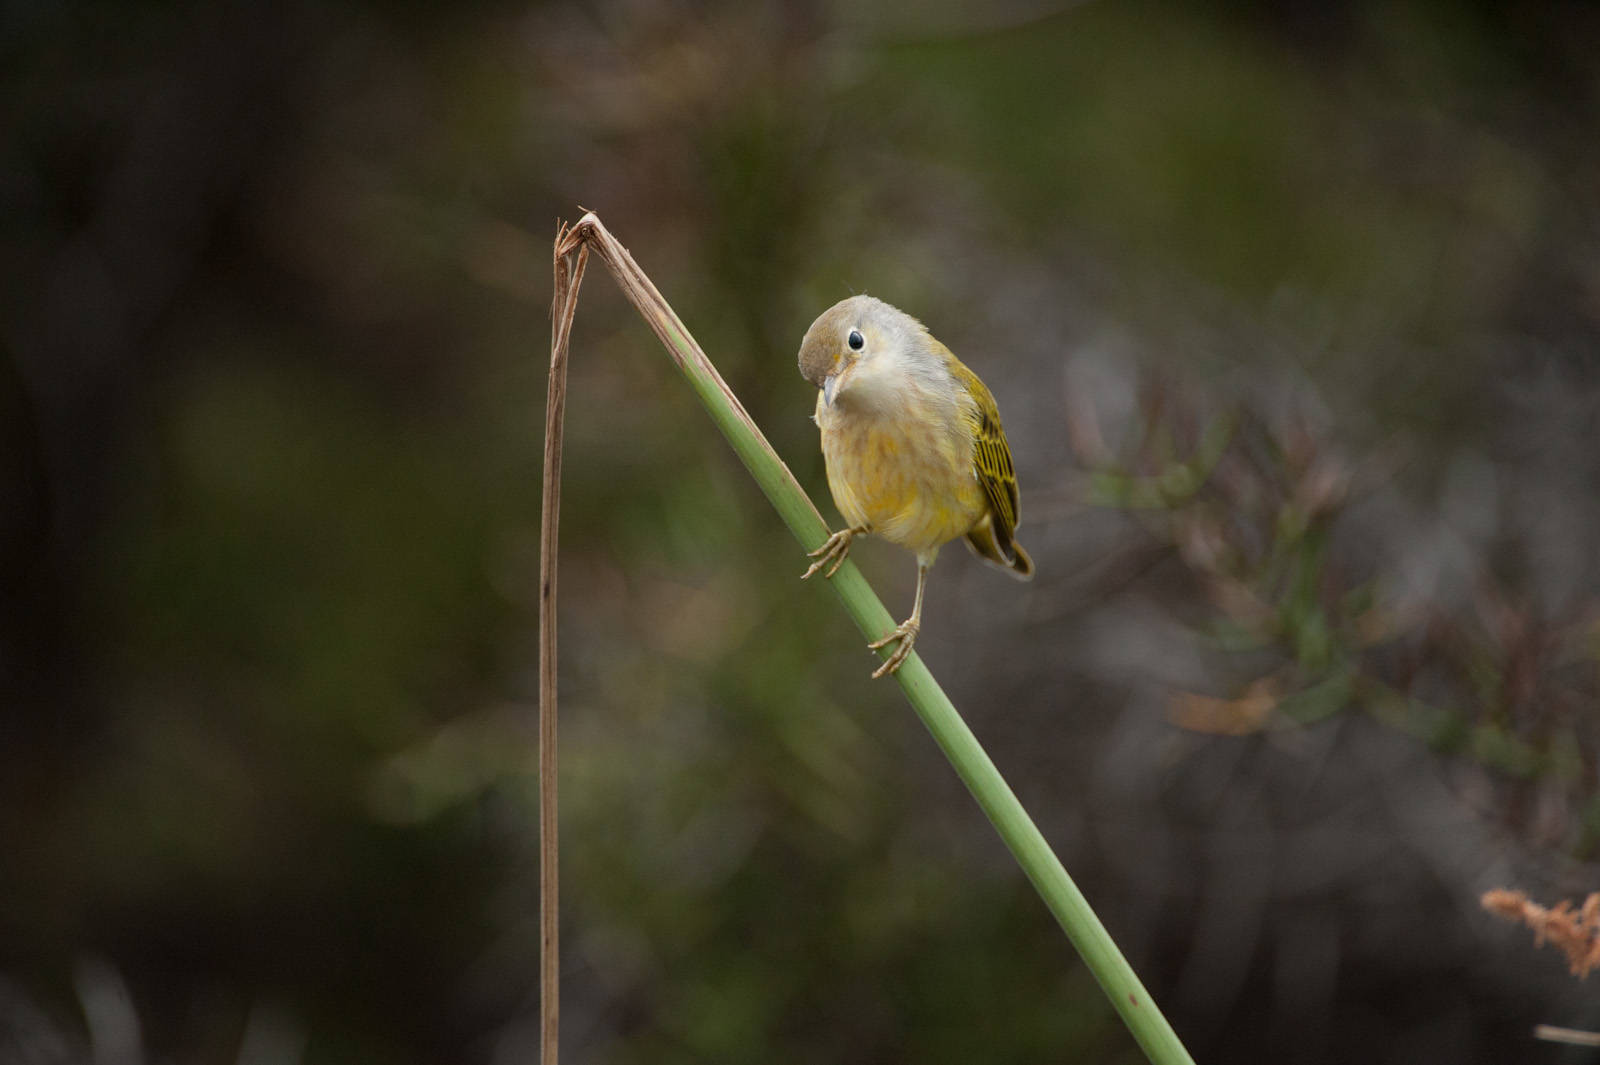 Photo: A yellow warbler (Dendroica petechia) at Tagus Cove in Galapagos National Park.